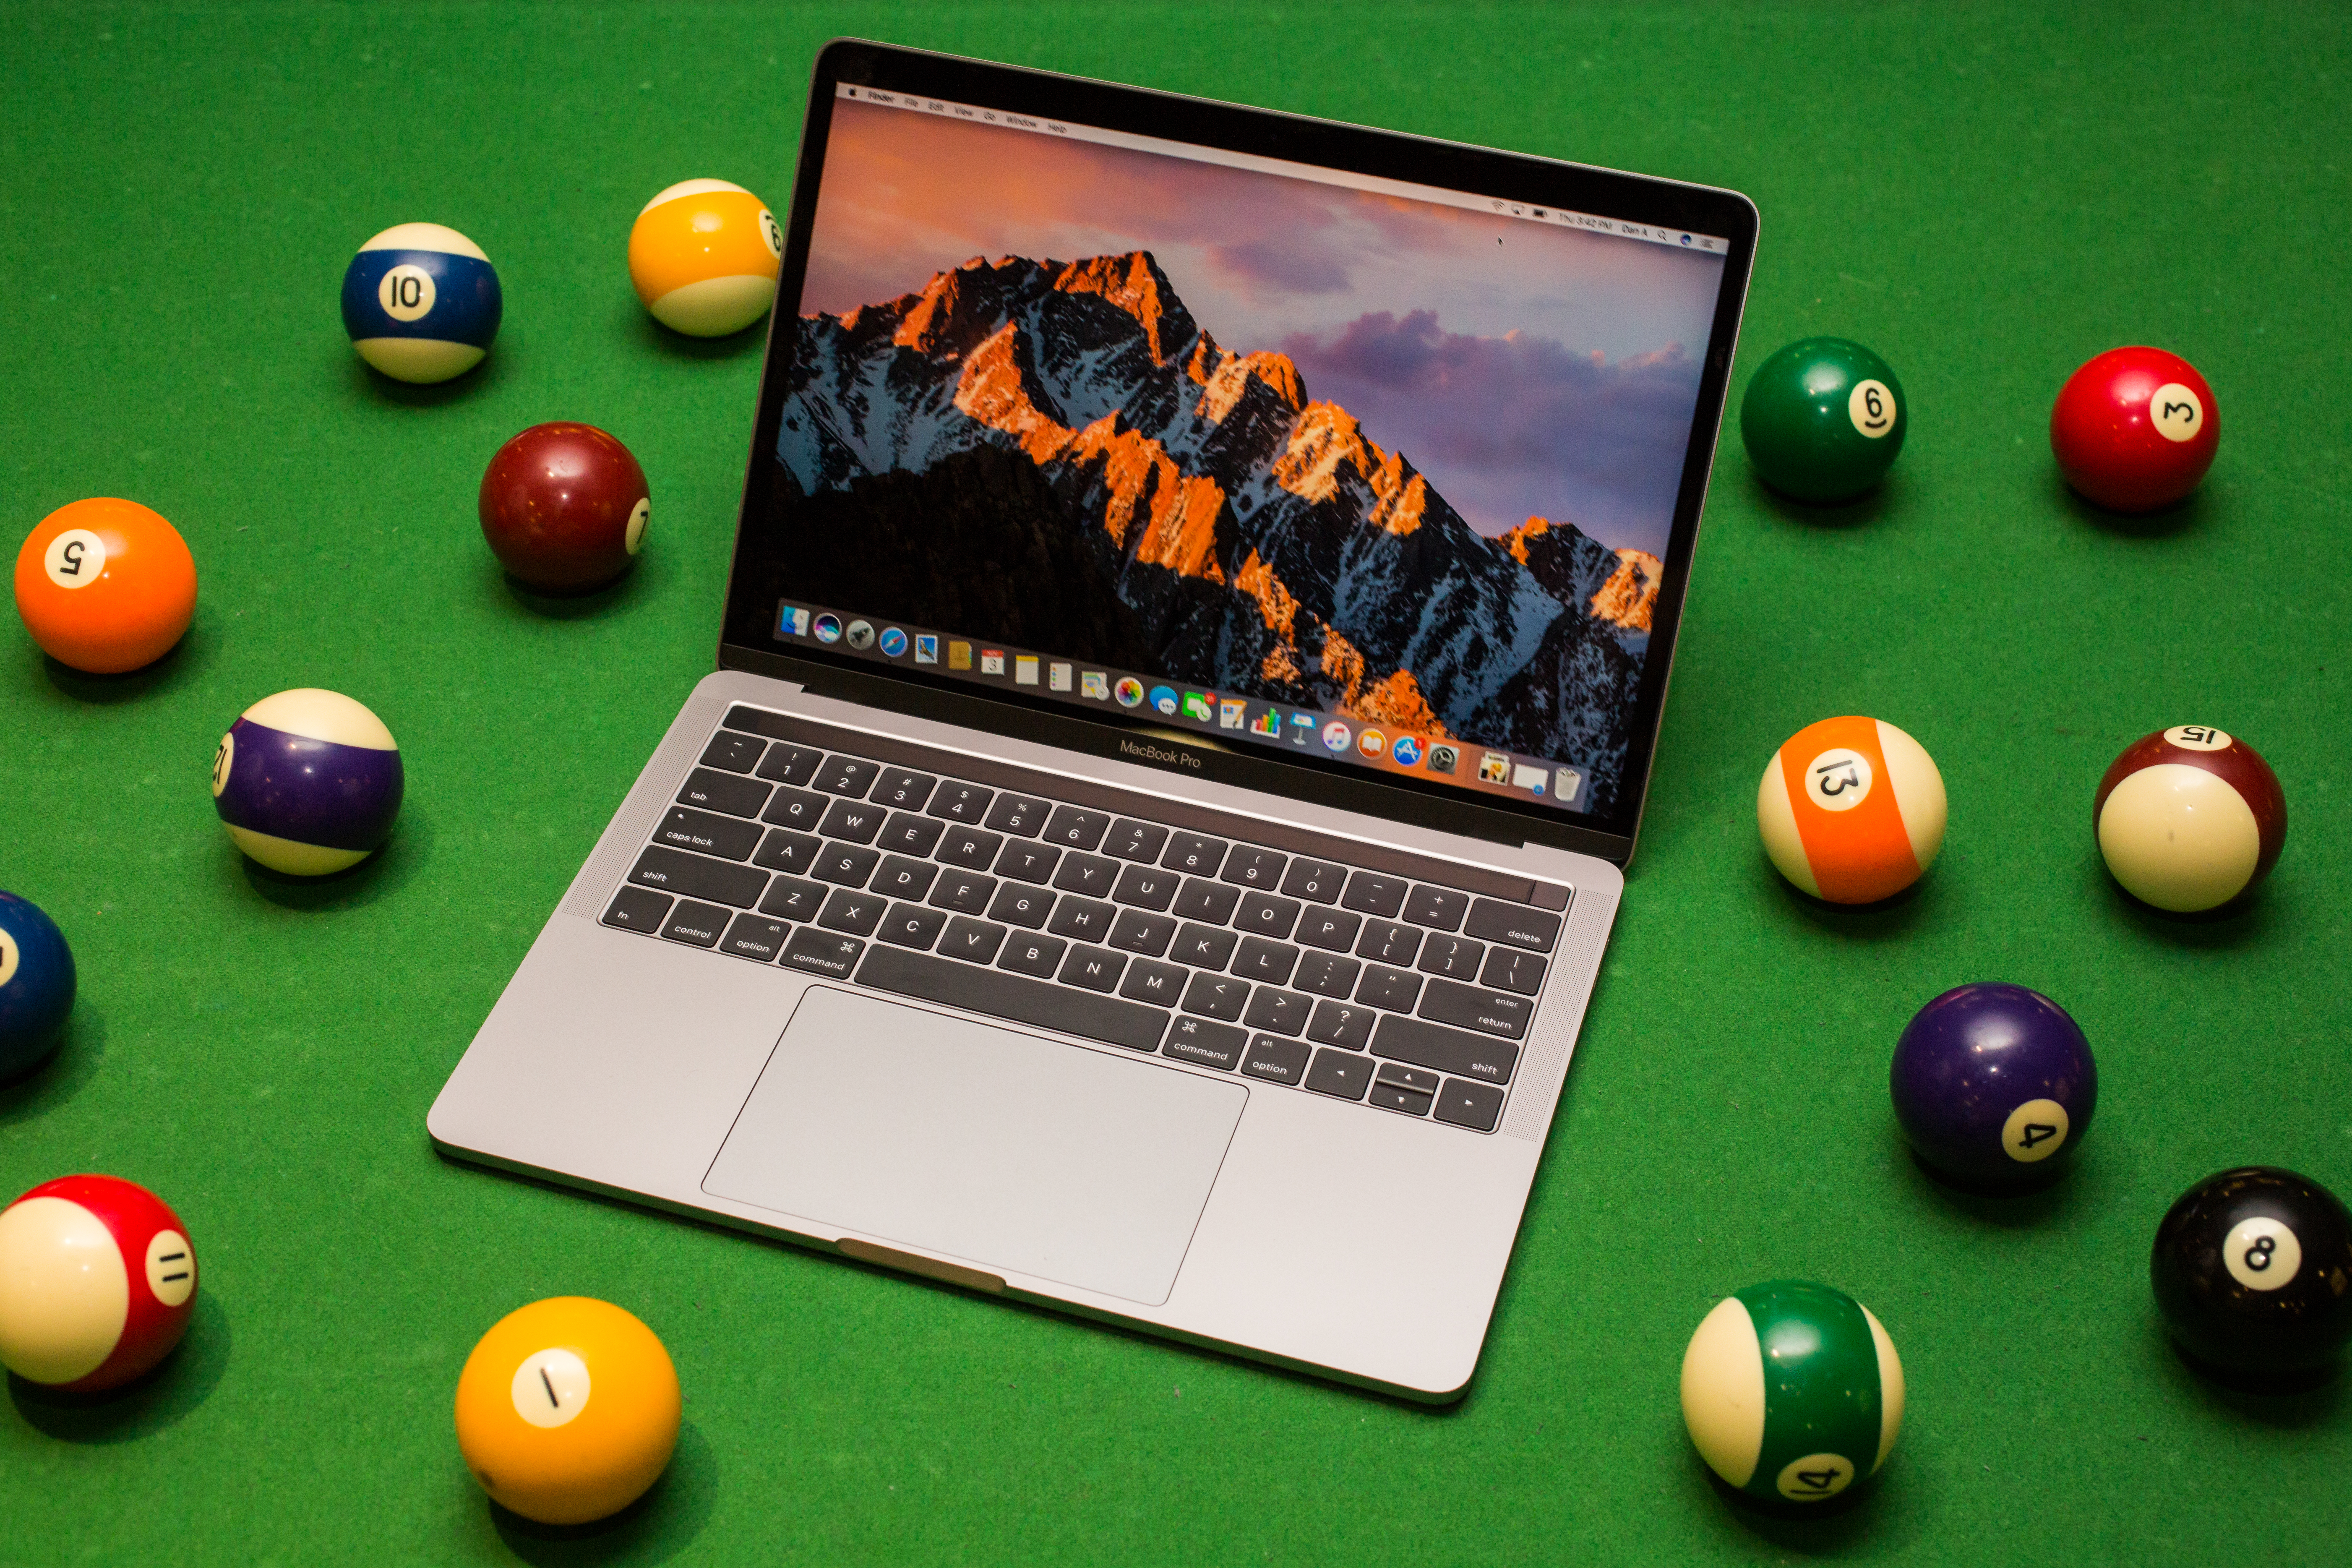 apple-macbook-pro-with-touch-bar-13-inch-2016-48.jpg